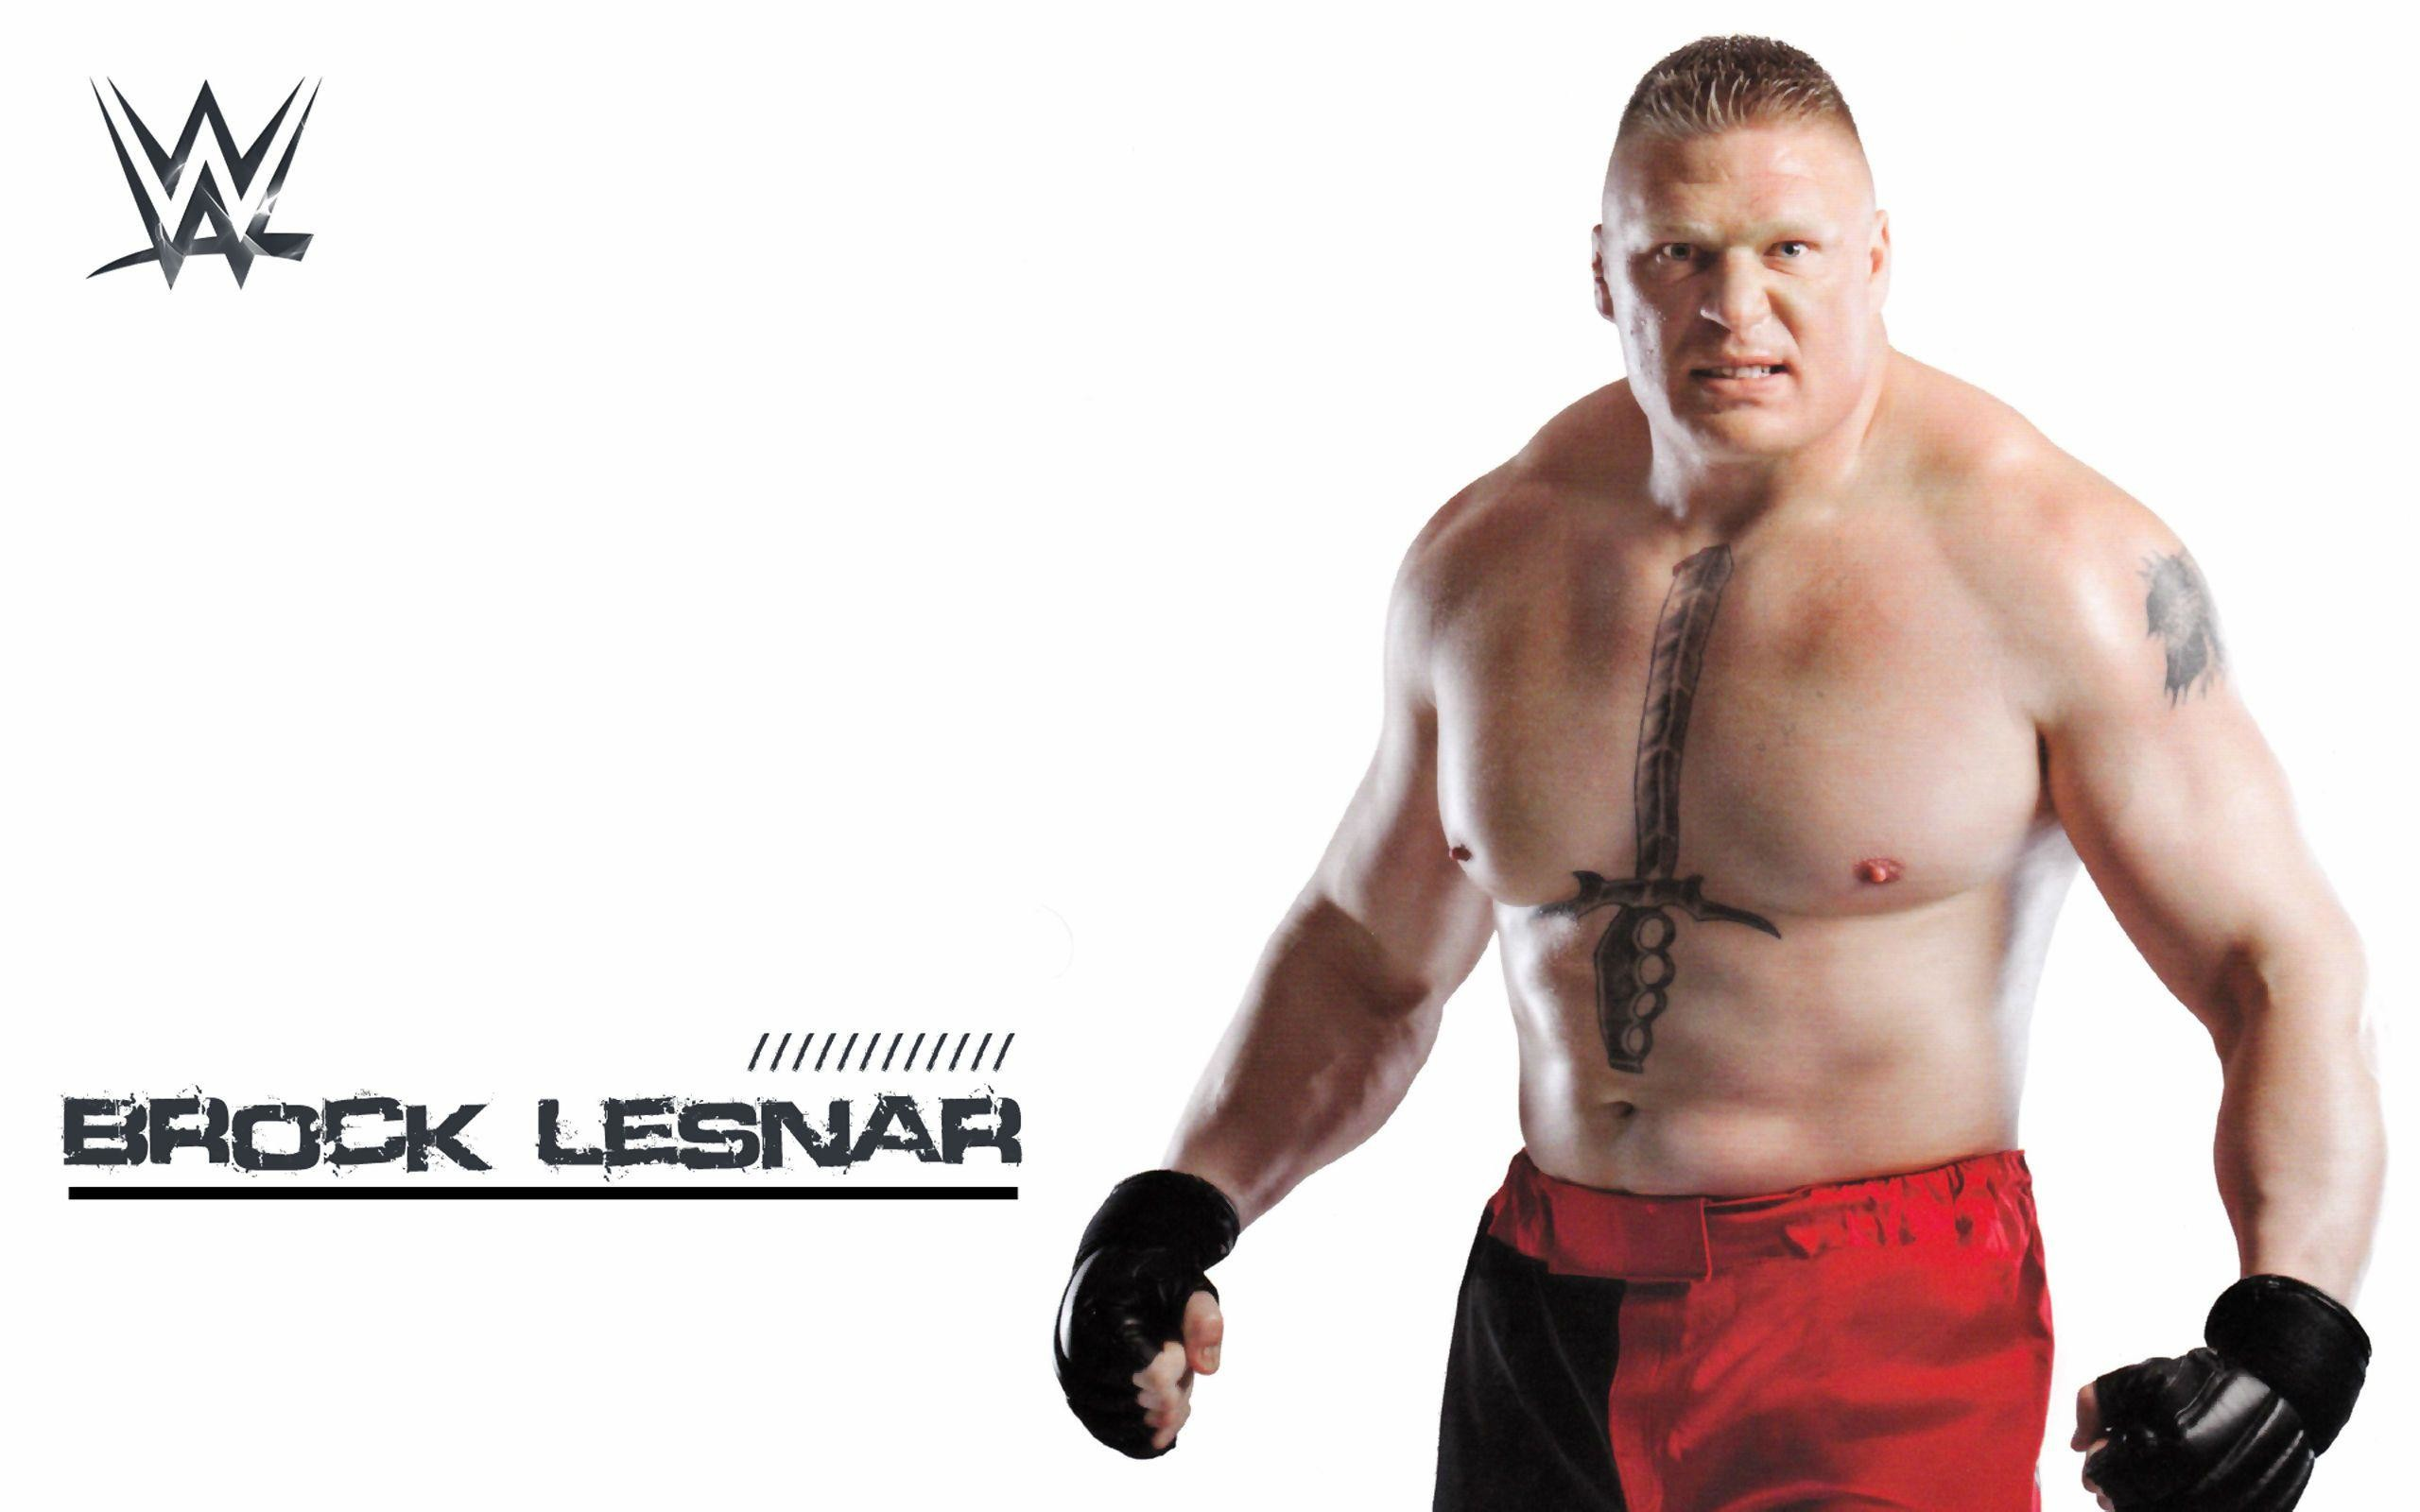 2560x1600 wwe superstar brock lesnar hd wallpapers Archives - www .